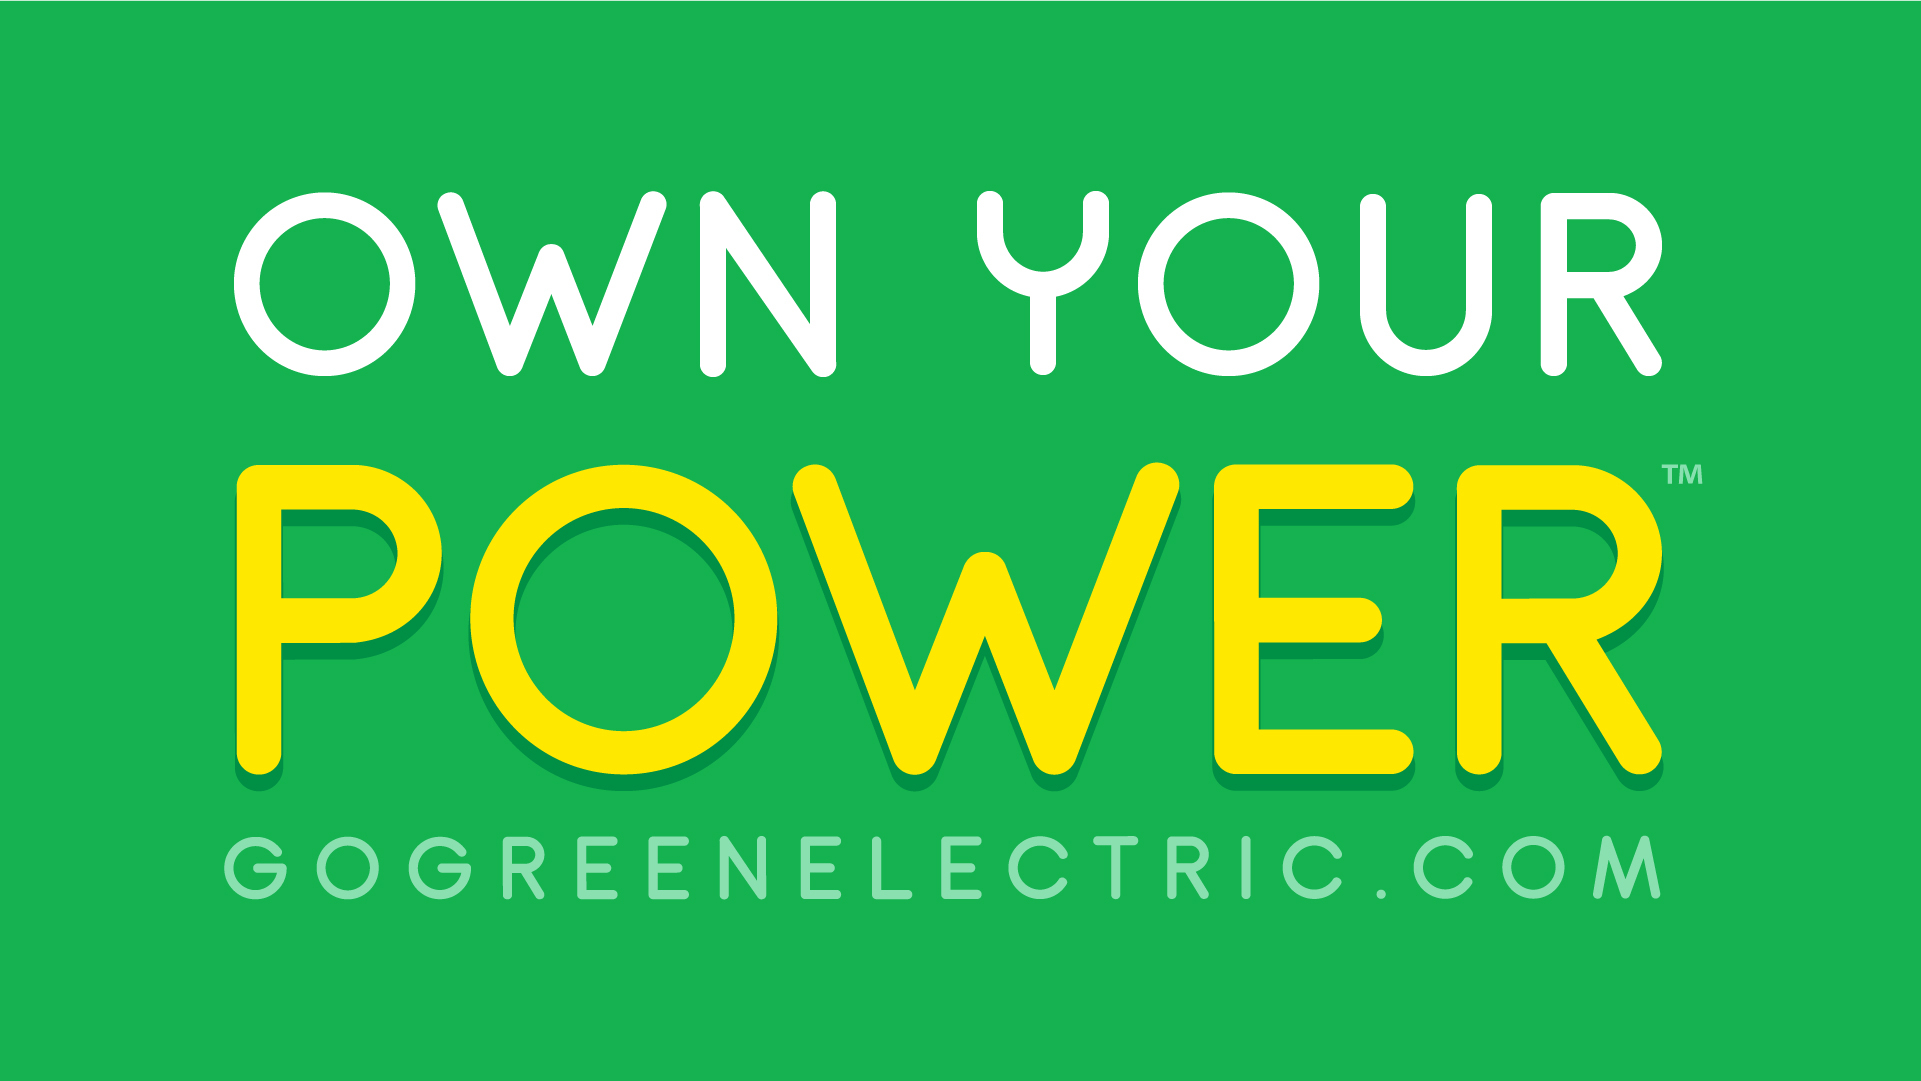 Go Green Electric